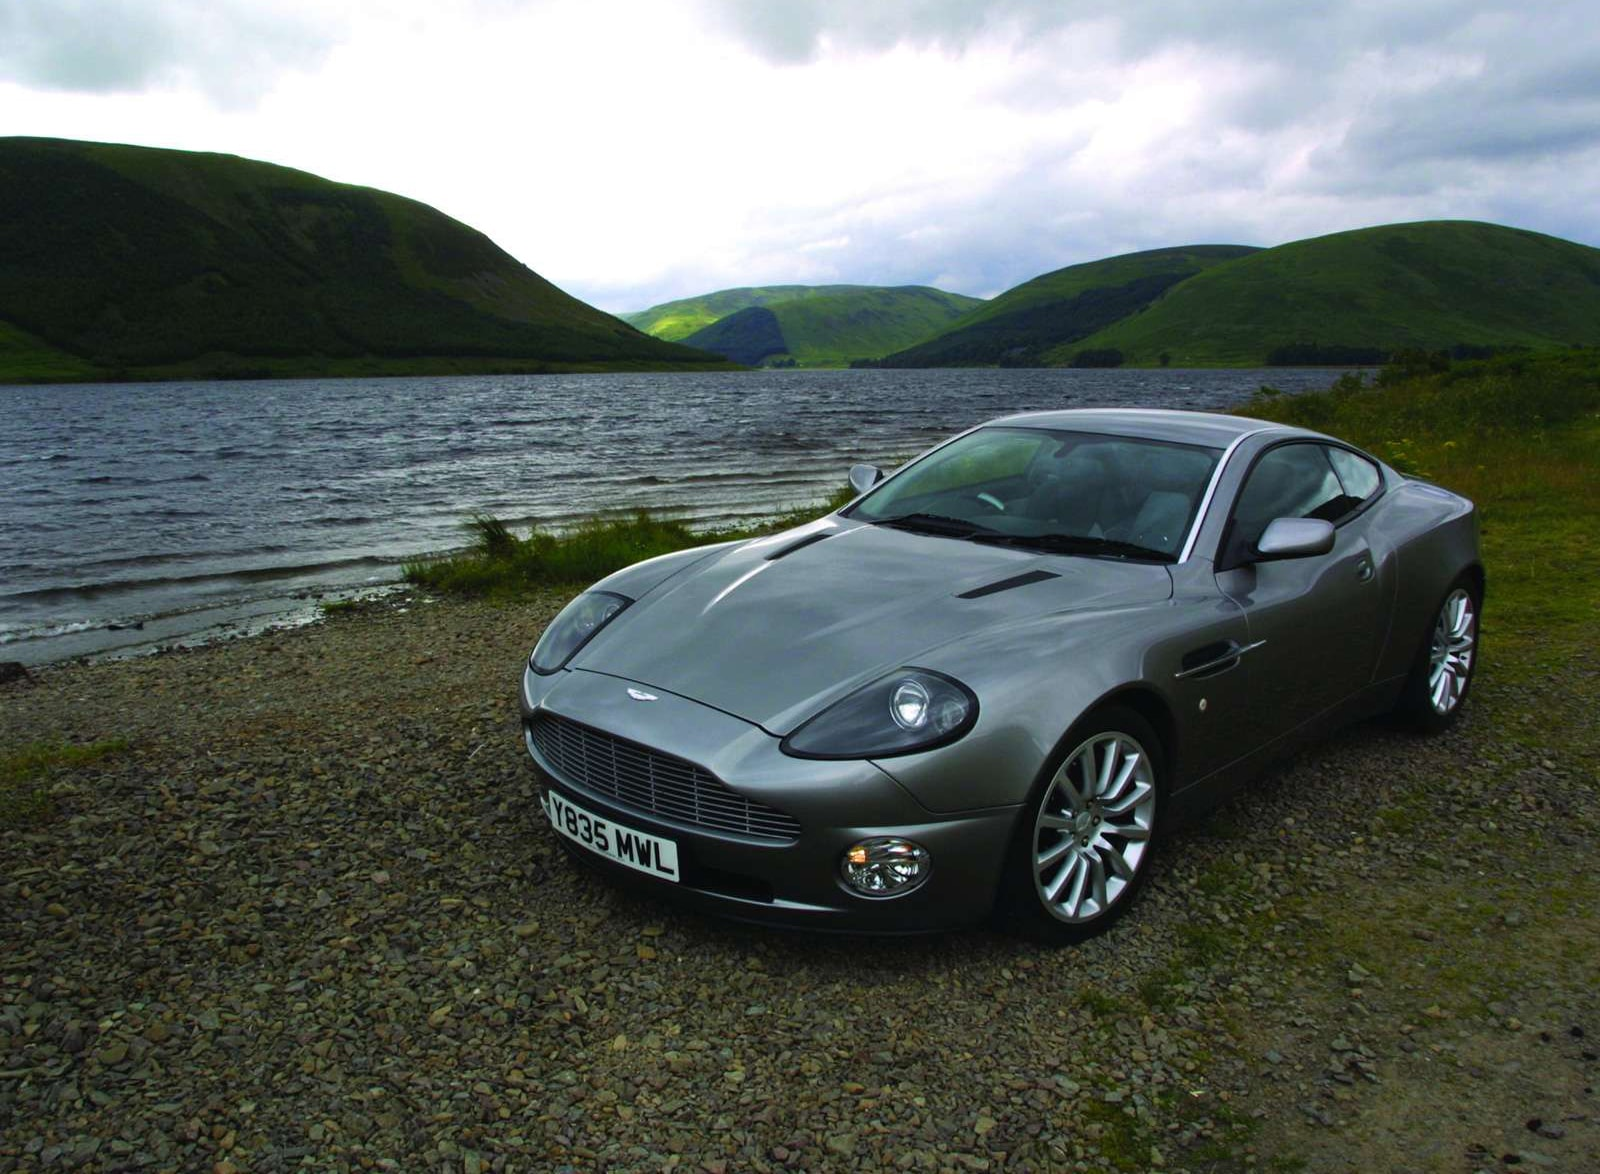 2001 Aston Martin Vanquish Wallpapers